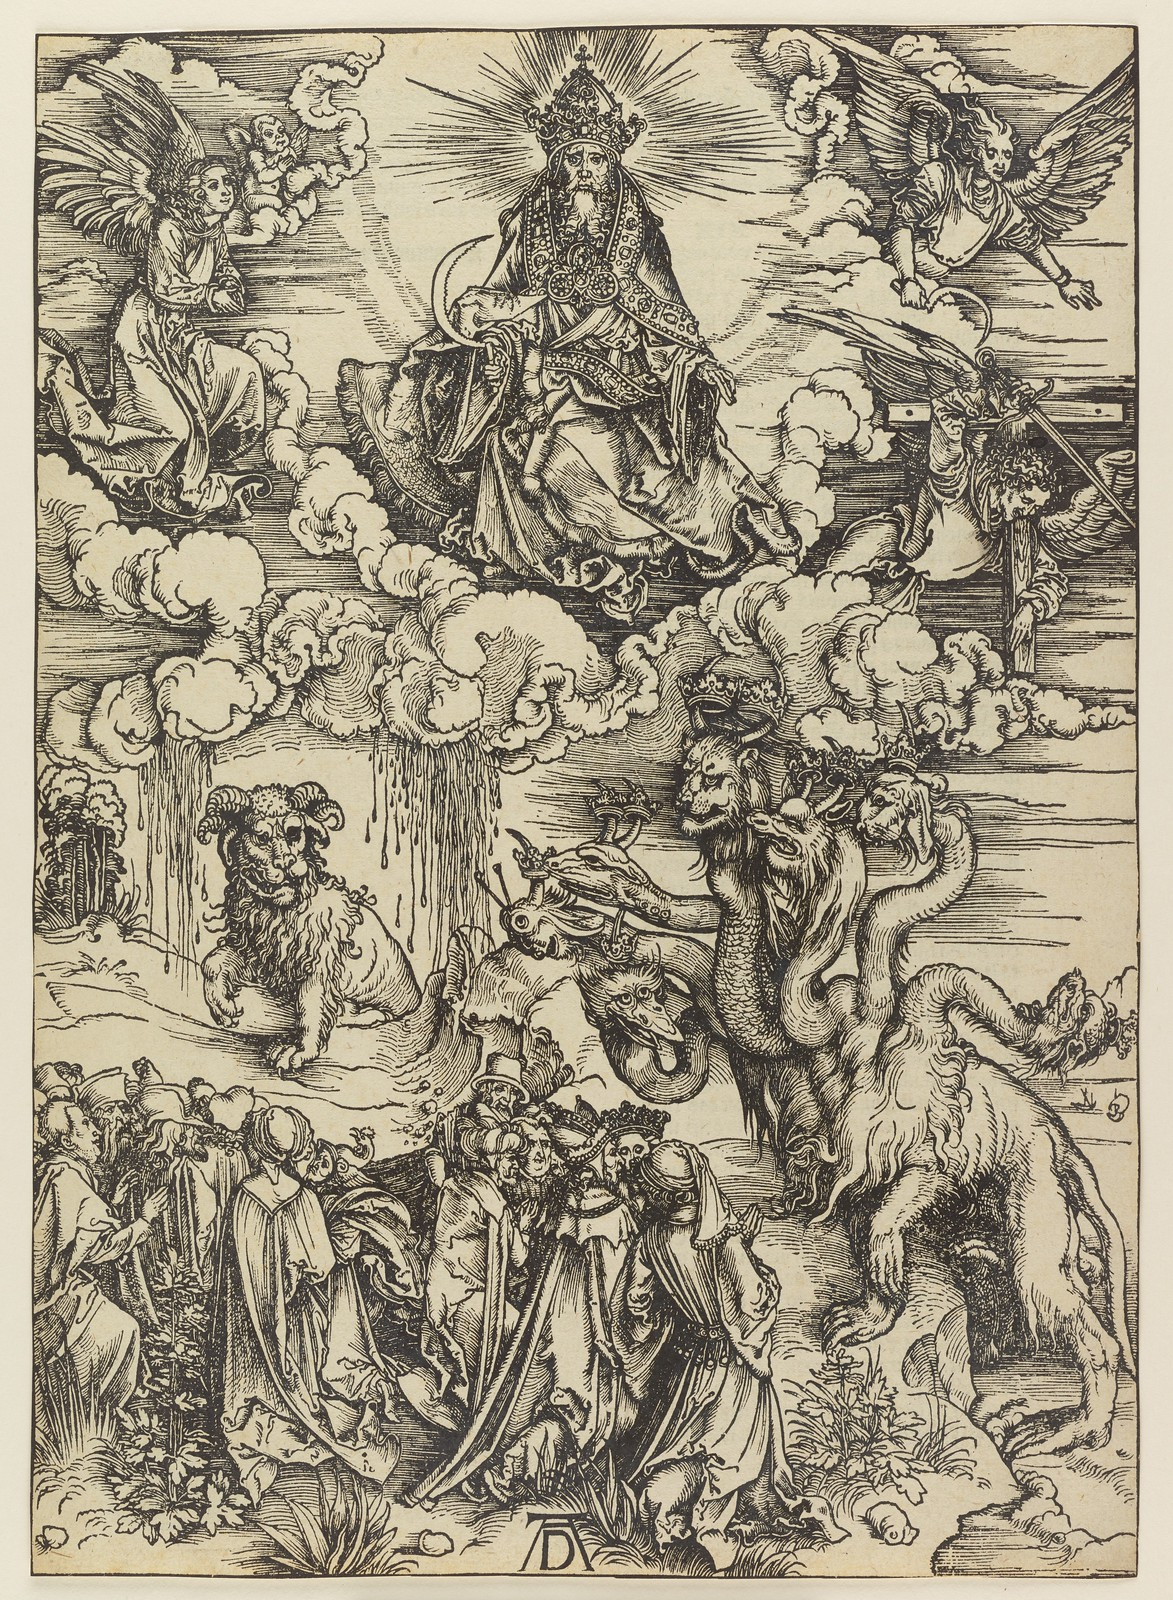 Albrecht Dürer - Beast with two horns like a lamb, Plate twelve of fifteen from the Latin edition of The Apocalypse series, printed 1511